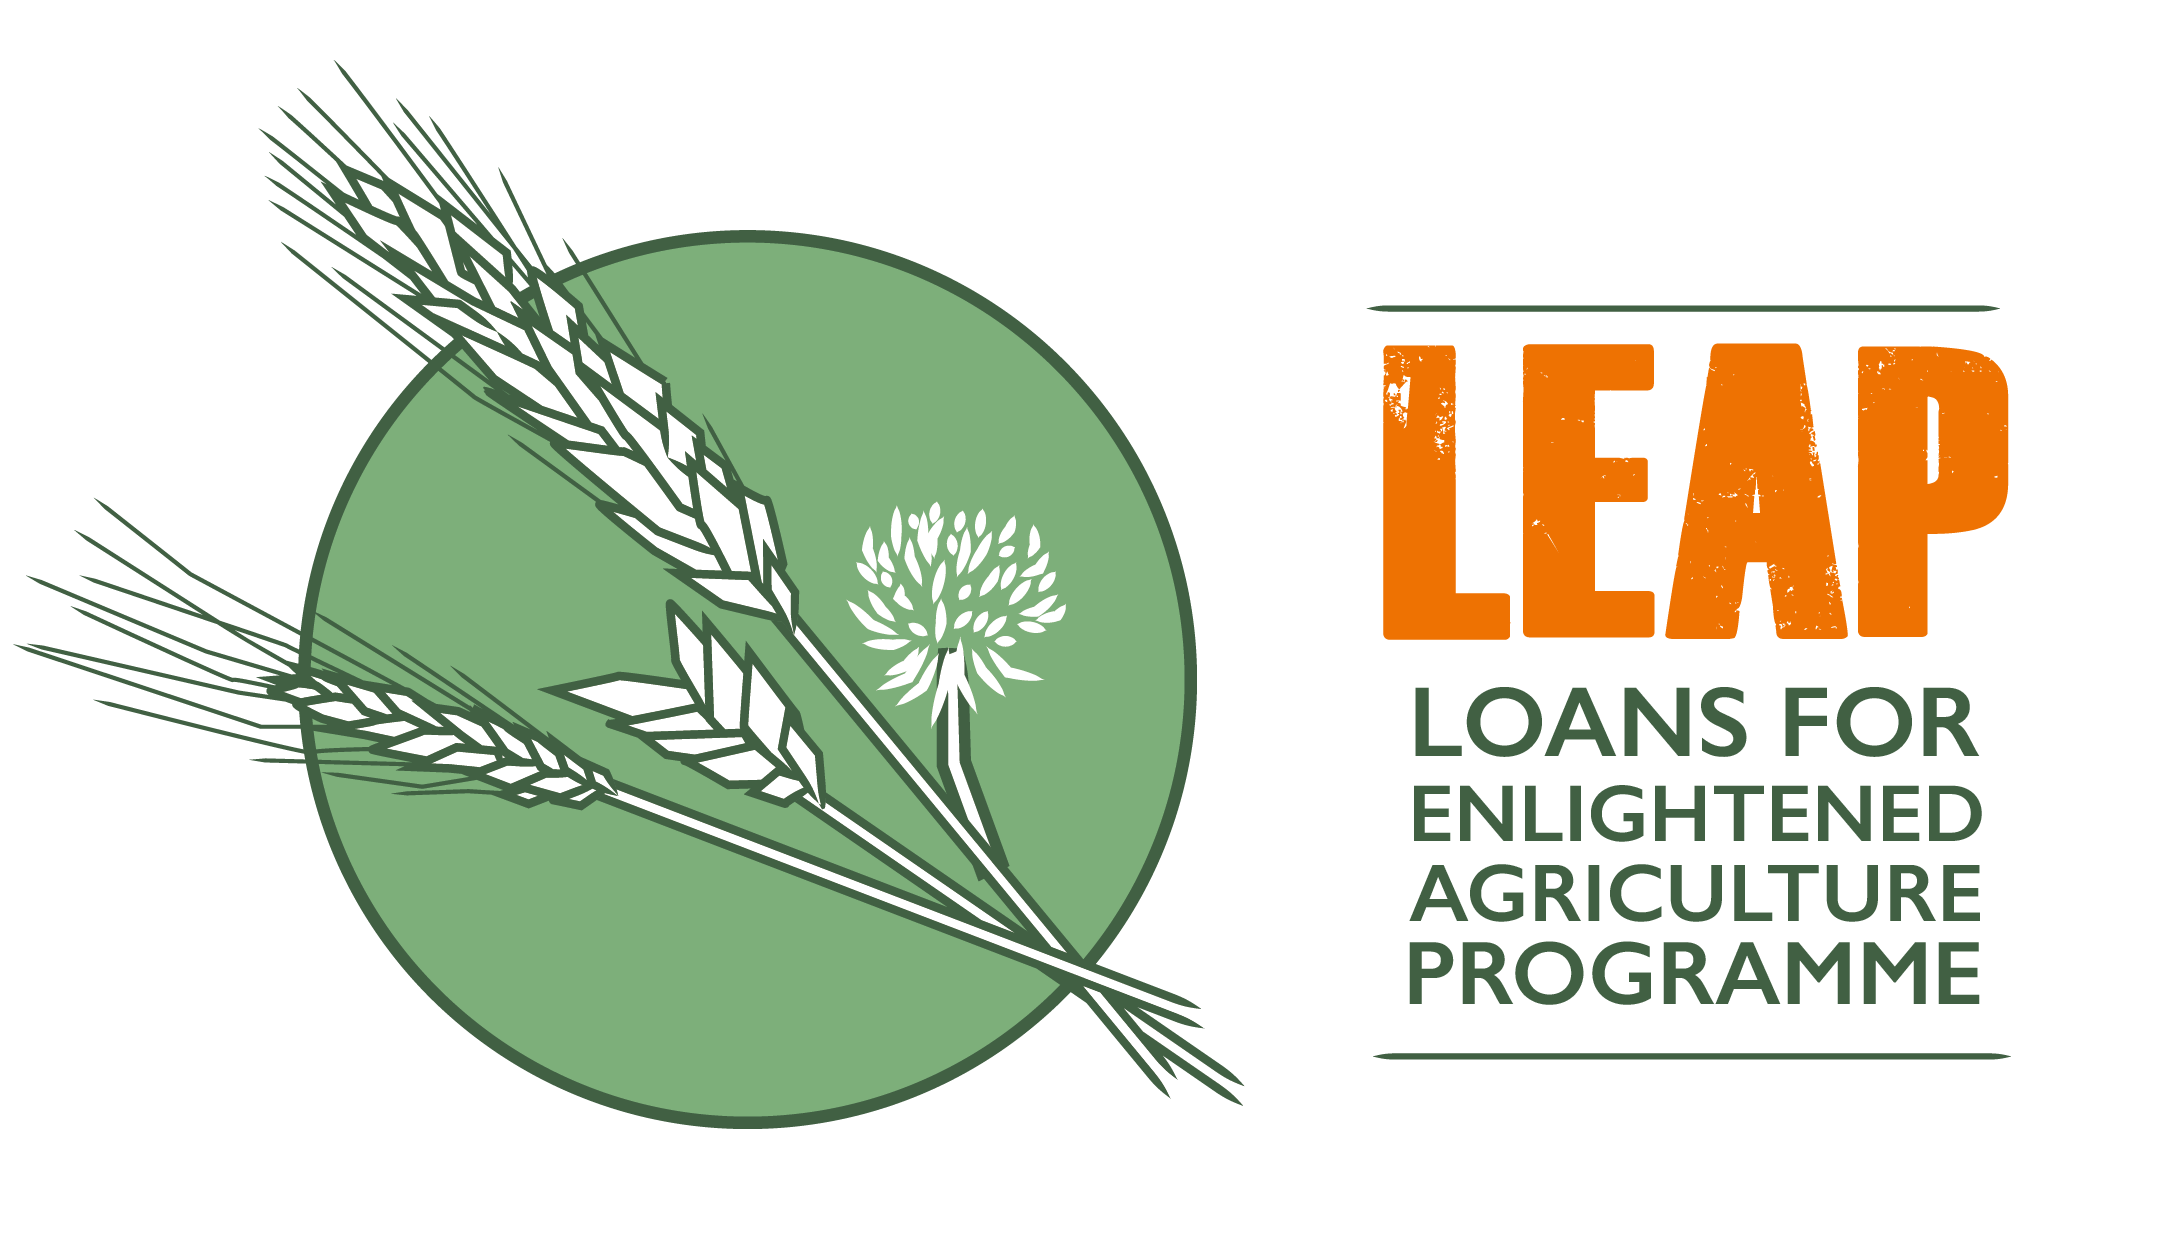 Loan-for-enlightened-agriculture-a-team-foundation